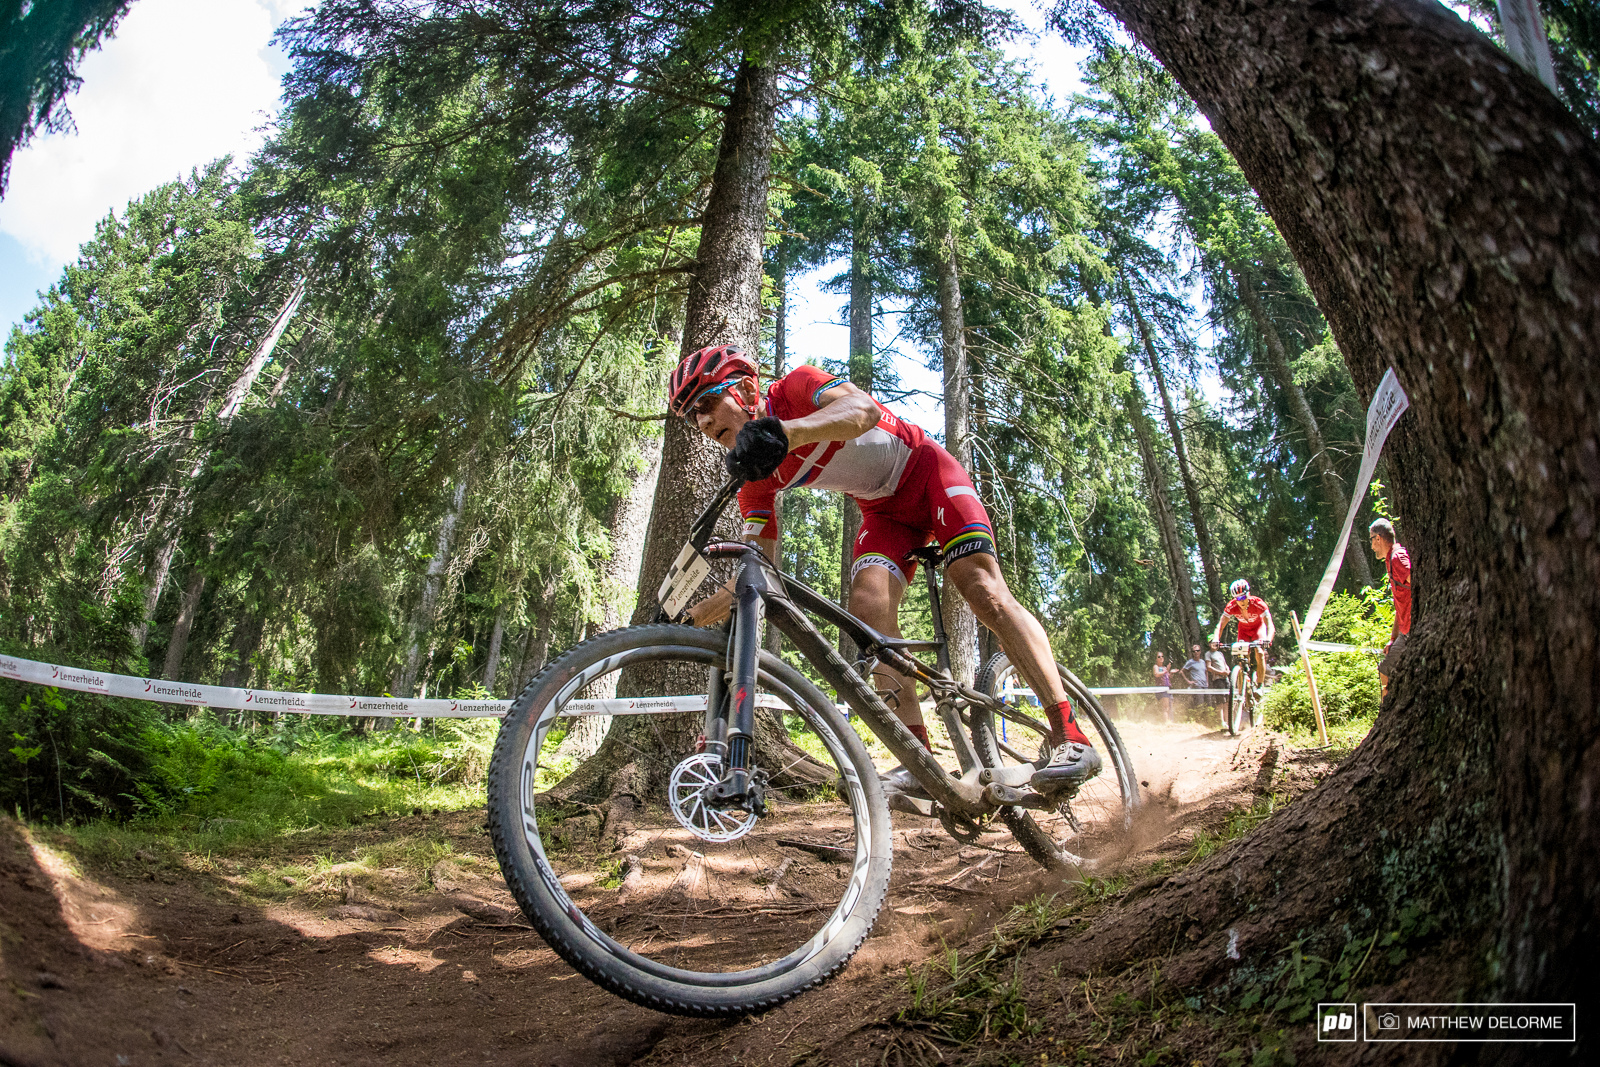 Jaroslav Kulhavy had the staying power to best Nino once again. The terrain was very similar to Nove Mesto so perhaps he felt right at home.